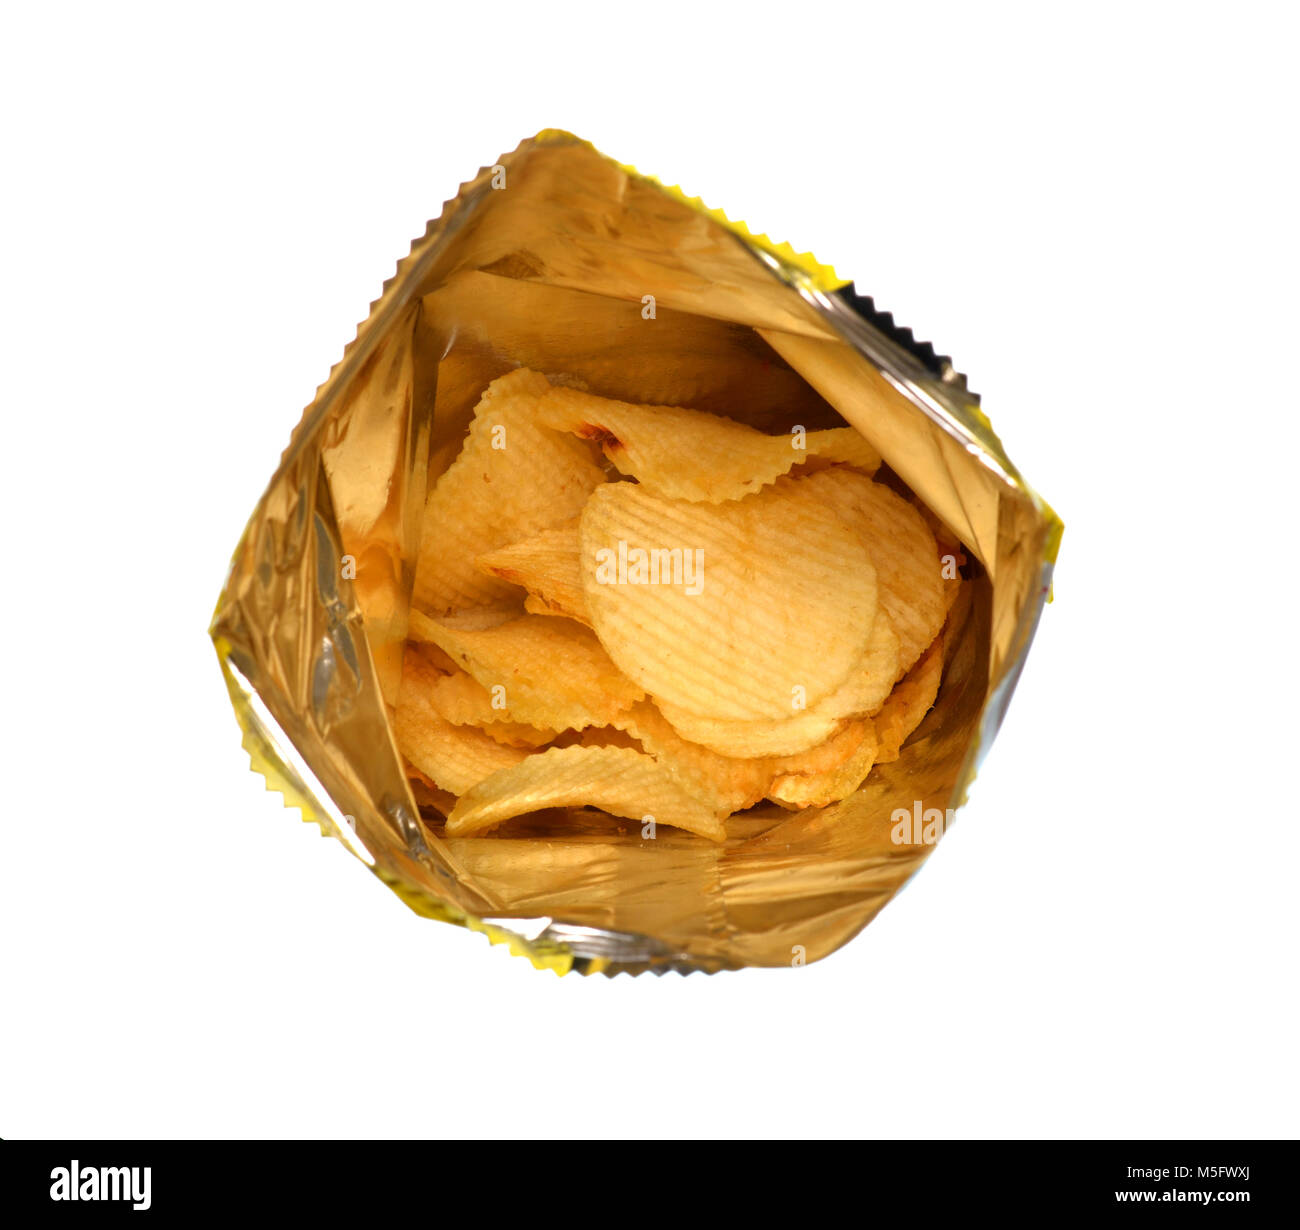 Isolate bag of potato chip, a closeup photo image of heap of fried potato chips in a plastic back isolate on white - Stock Image